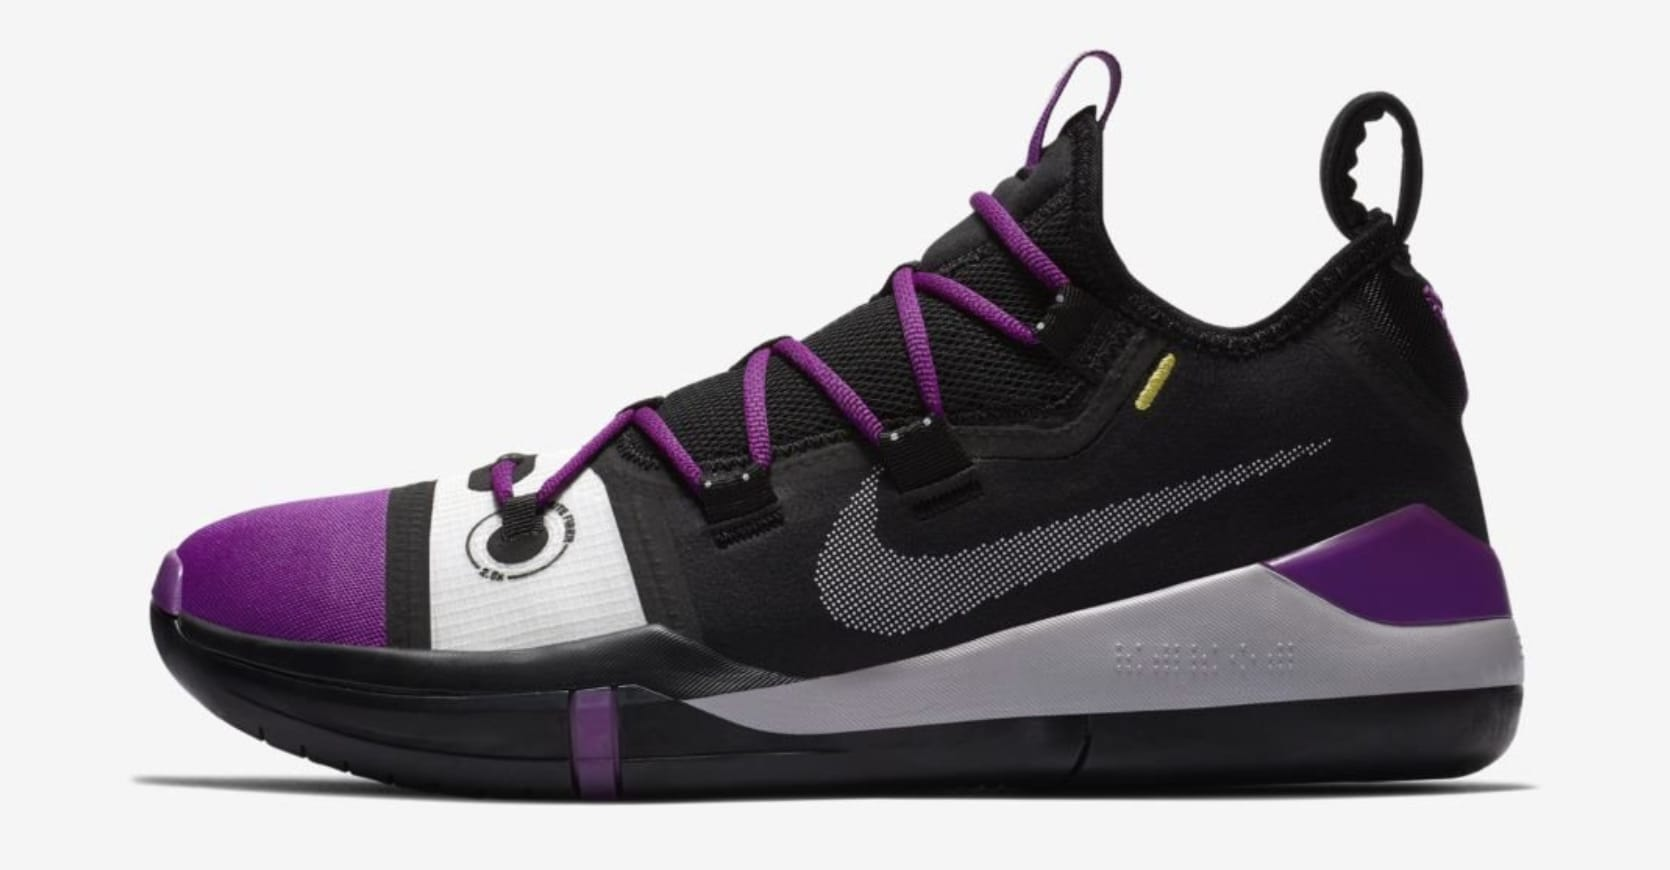 Nike Kobe A.D. 2018 'Lakers' (Lateral)